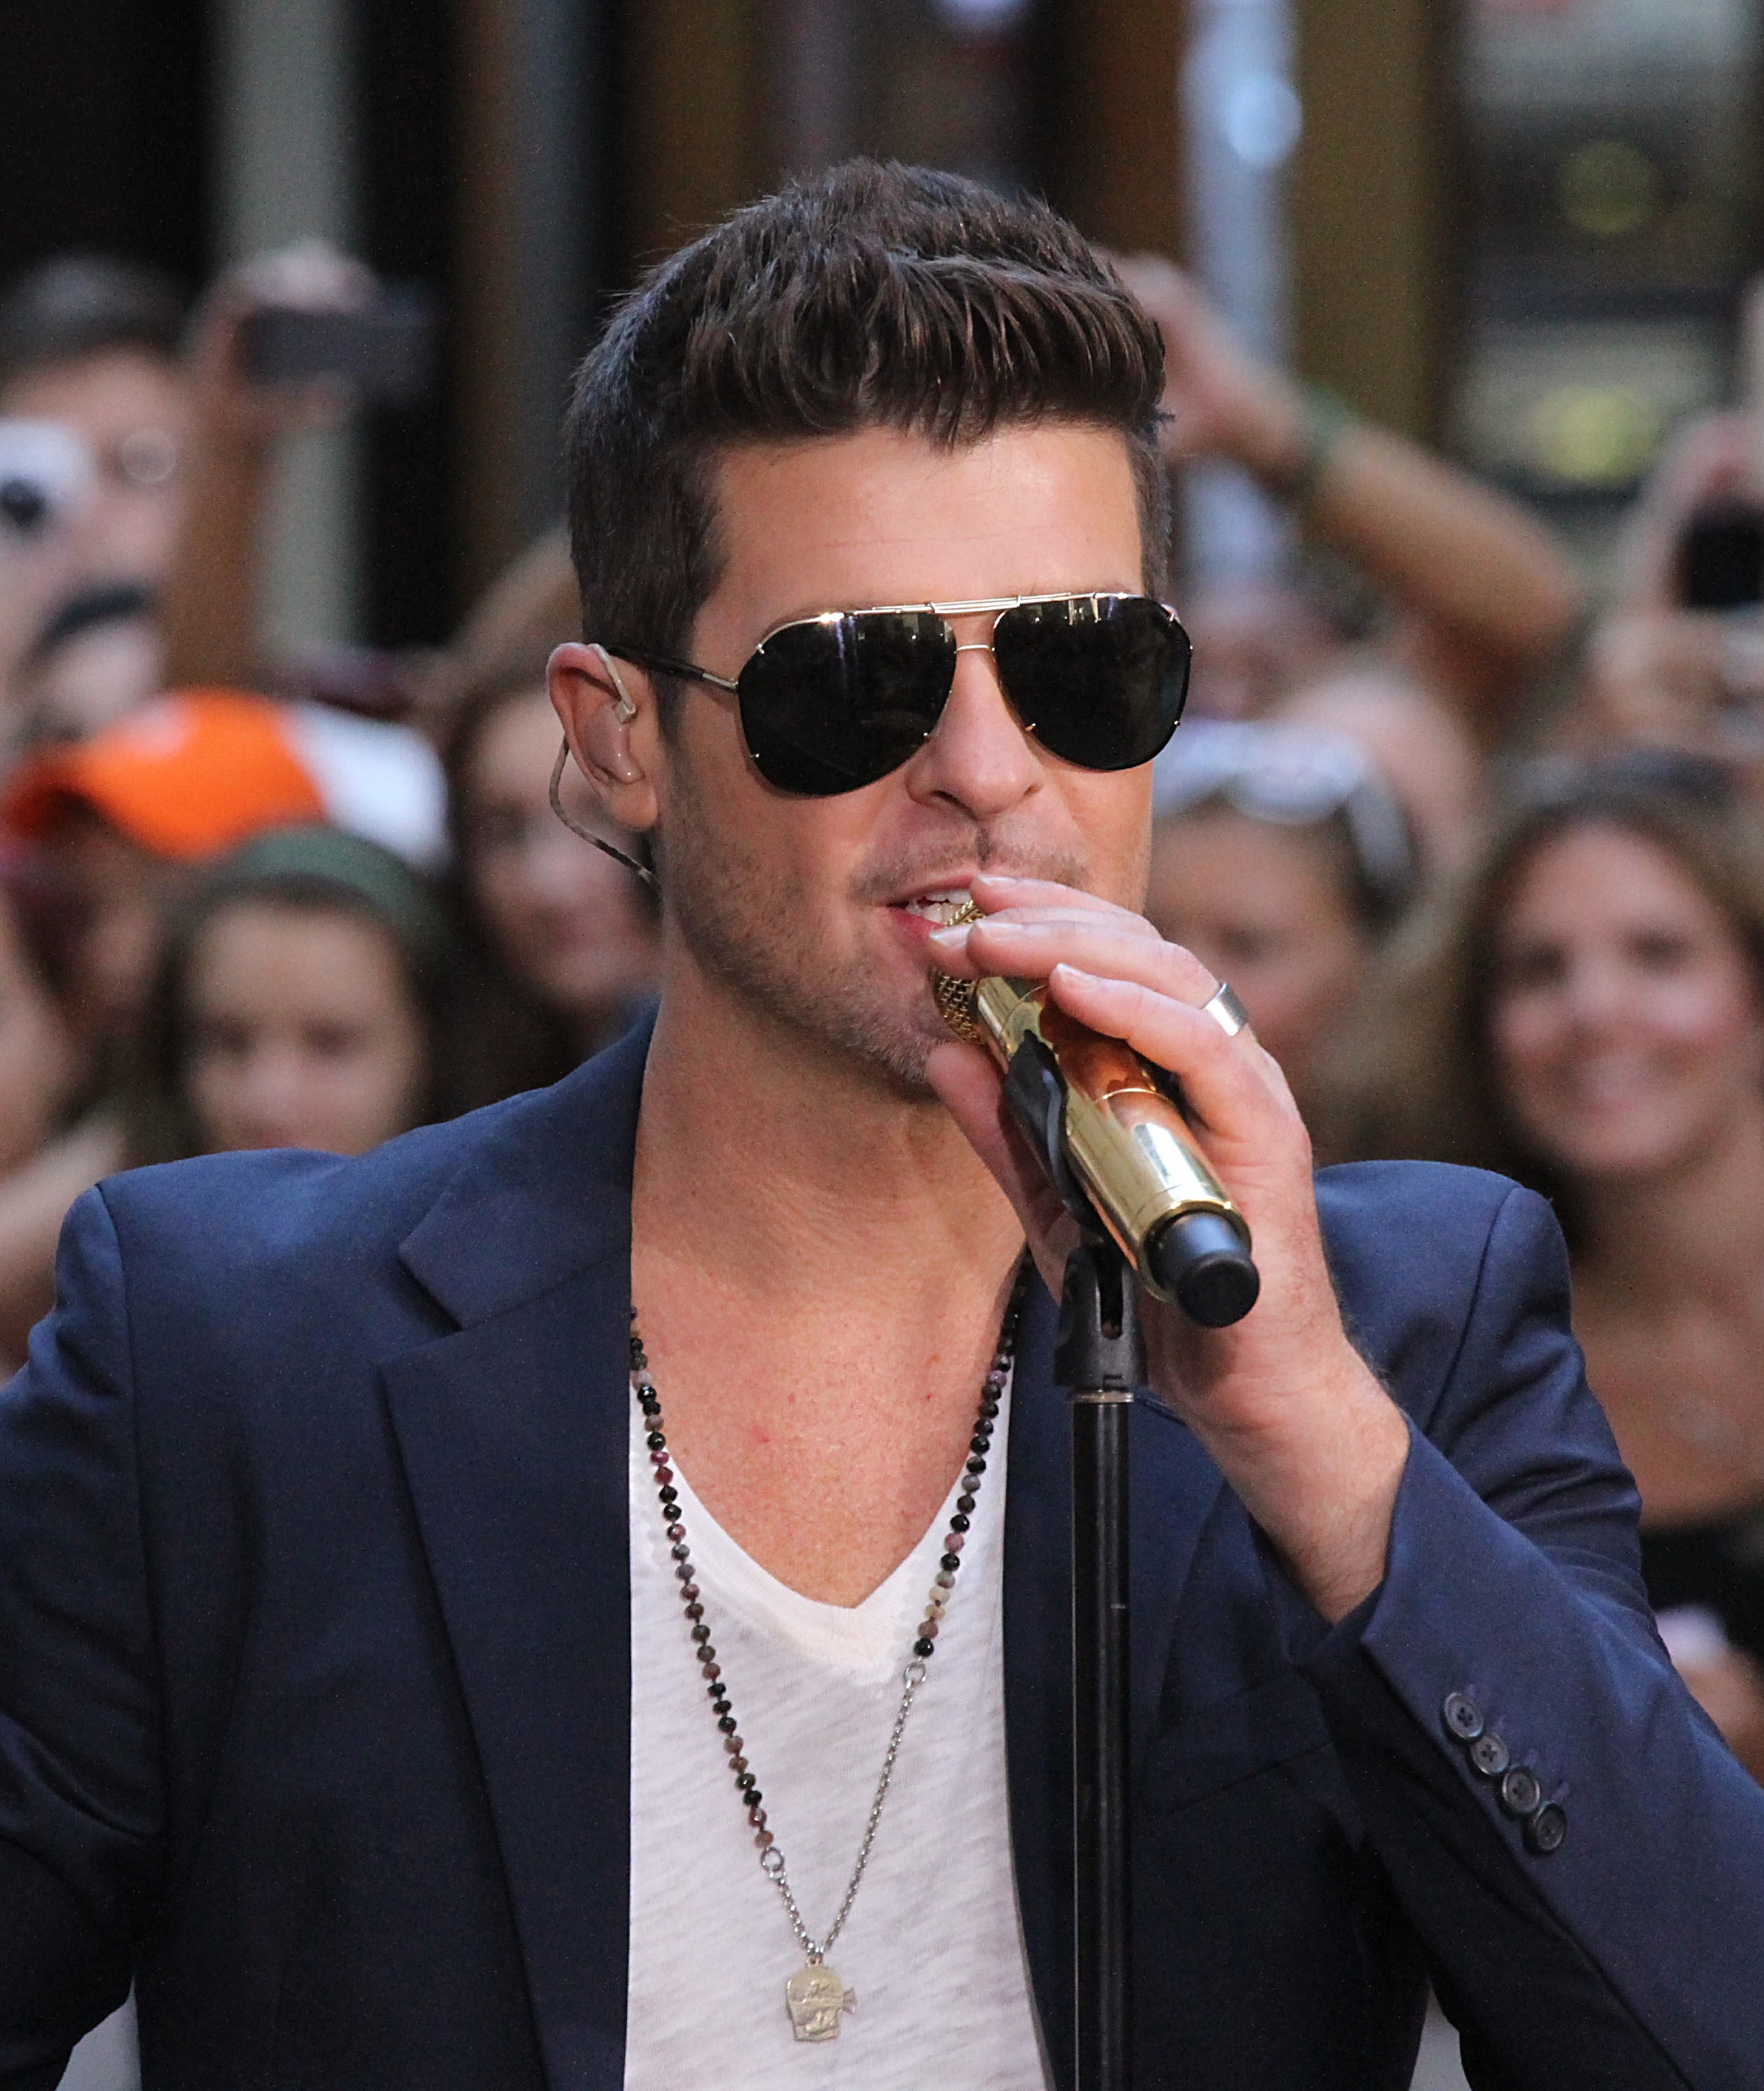 Pharrell Williams, Robin Thicke found guilty of infringing Marvin Gaye copyright with 'Blurred Lines'